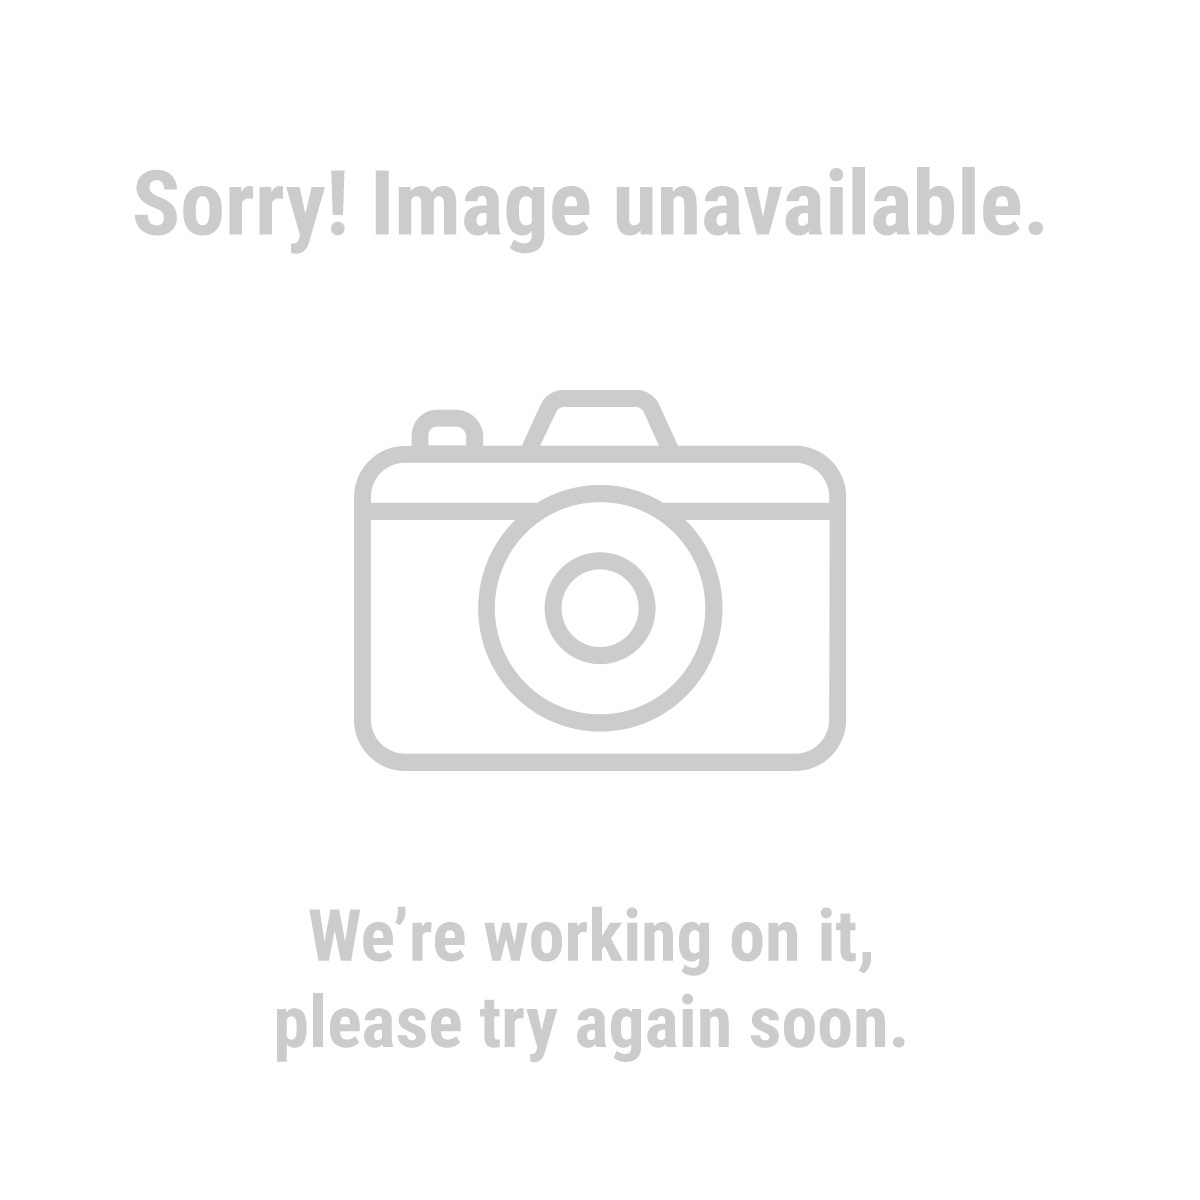 Vanguard 62905 25 ft. x 12 Gauge Multi-Outlet Extension Cord with Indicator Light